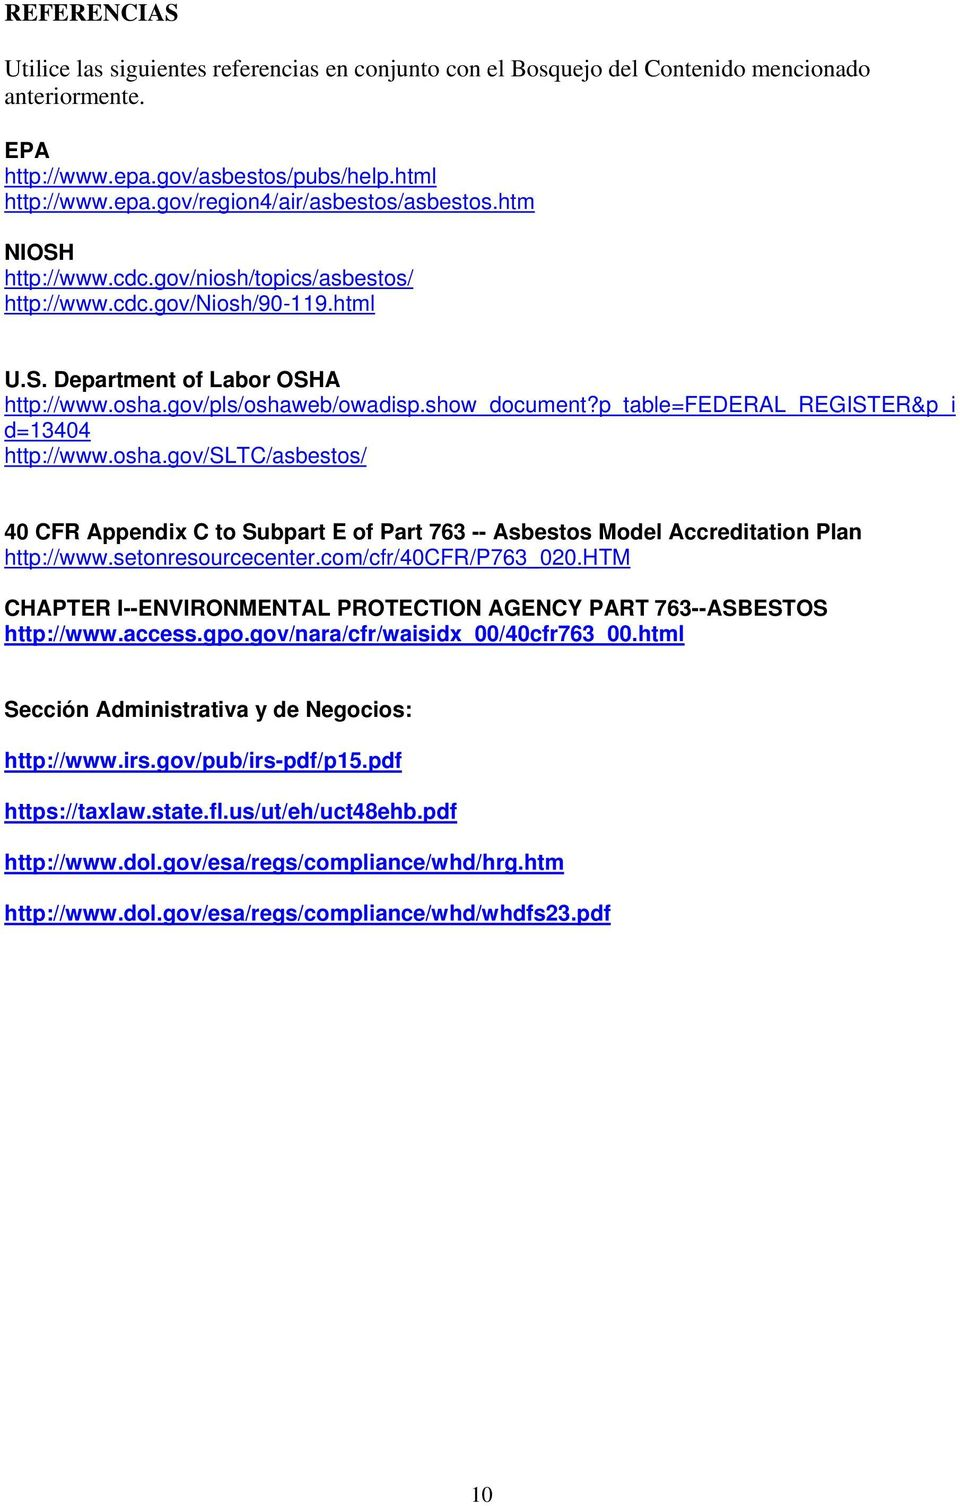 p_table=federal_register&p_i d=13404 http://www.osha.gov/sltc/asbestos/ 40 CFR Appendix C to Subpart E of Part 763 -- Asbestos Model Accreditation Plan http://www.setonresourcecenter.